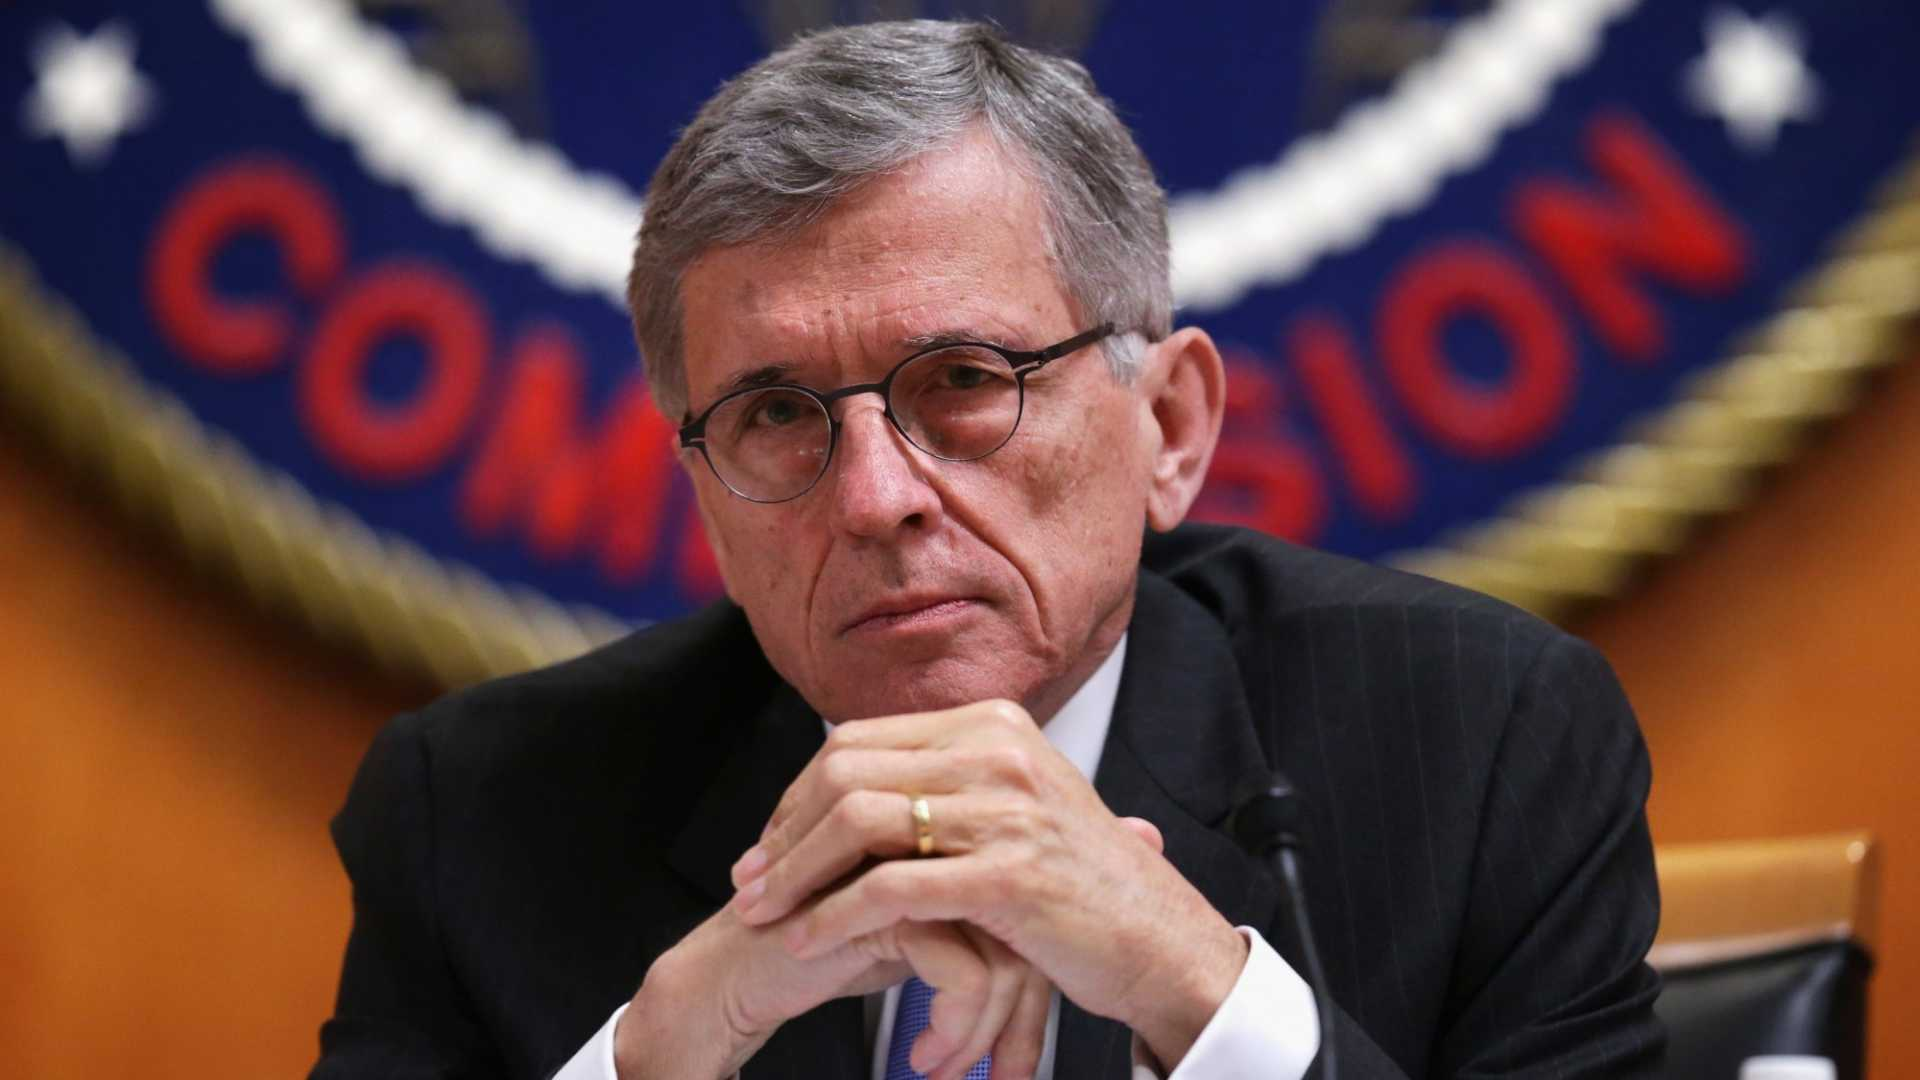 FCC Chairman Tom Wheeler says your data belongs to you.